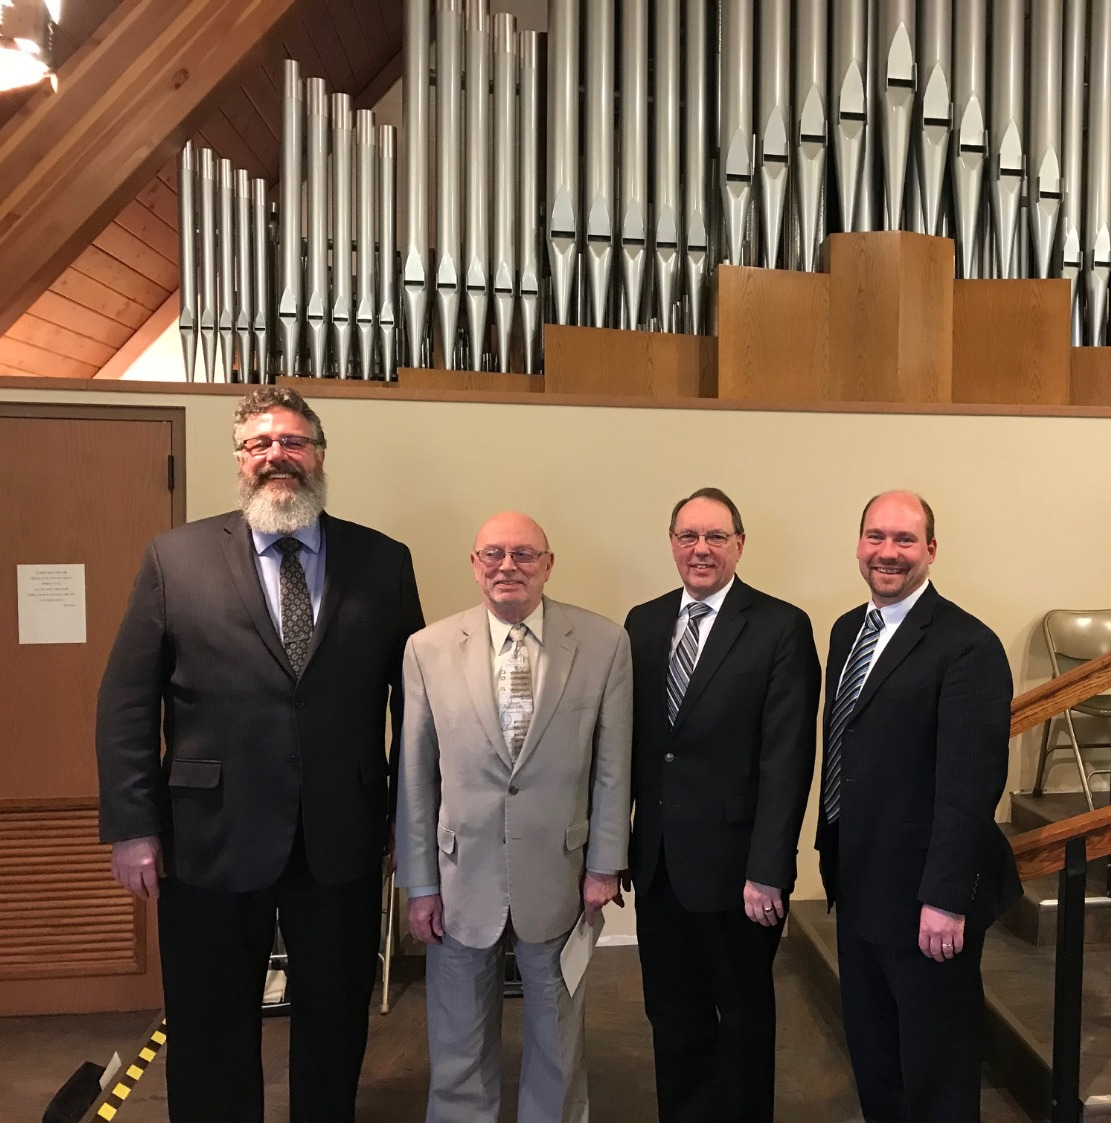 25th Anniversary Organists